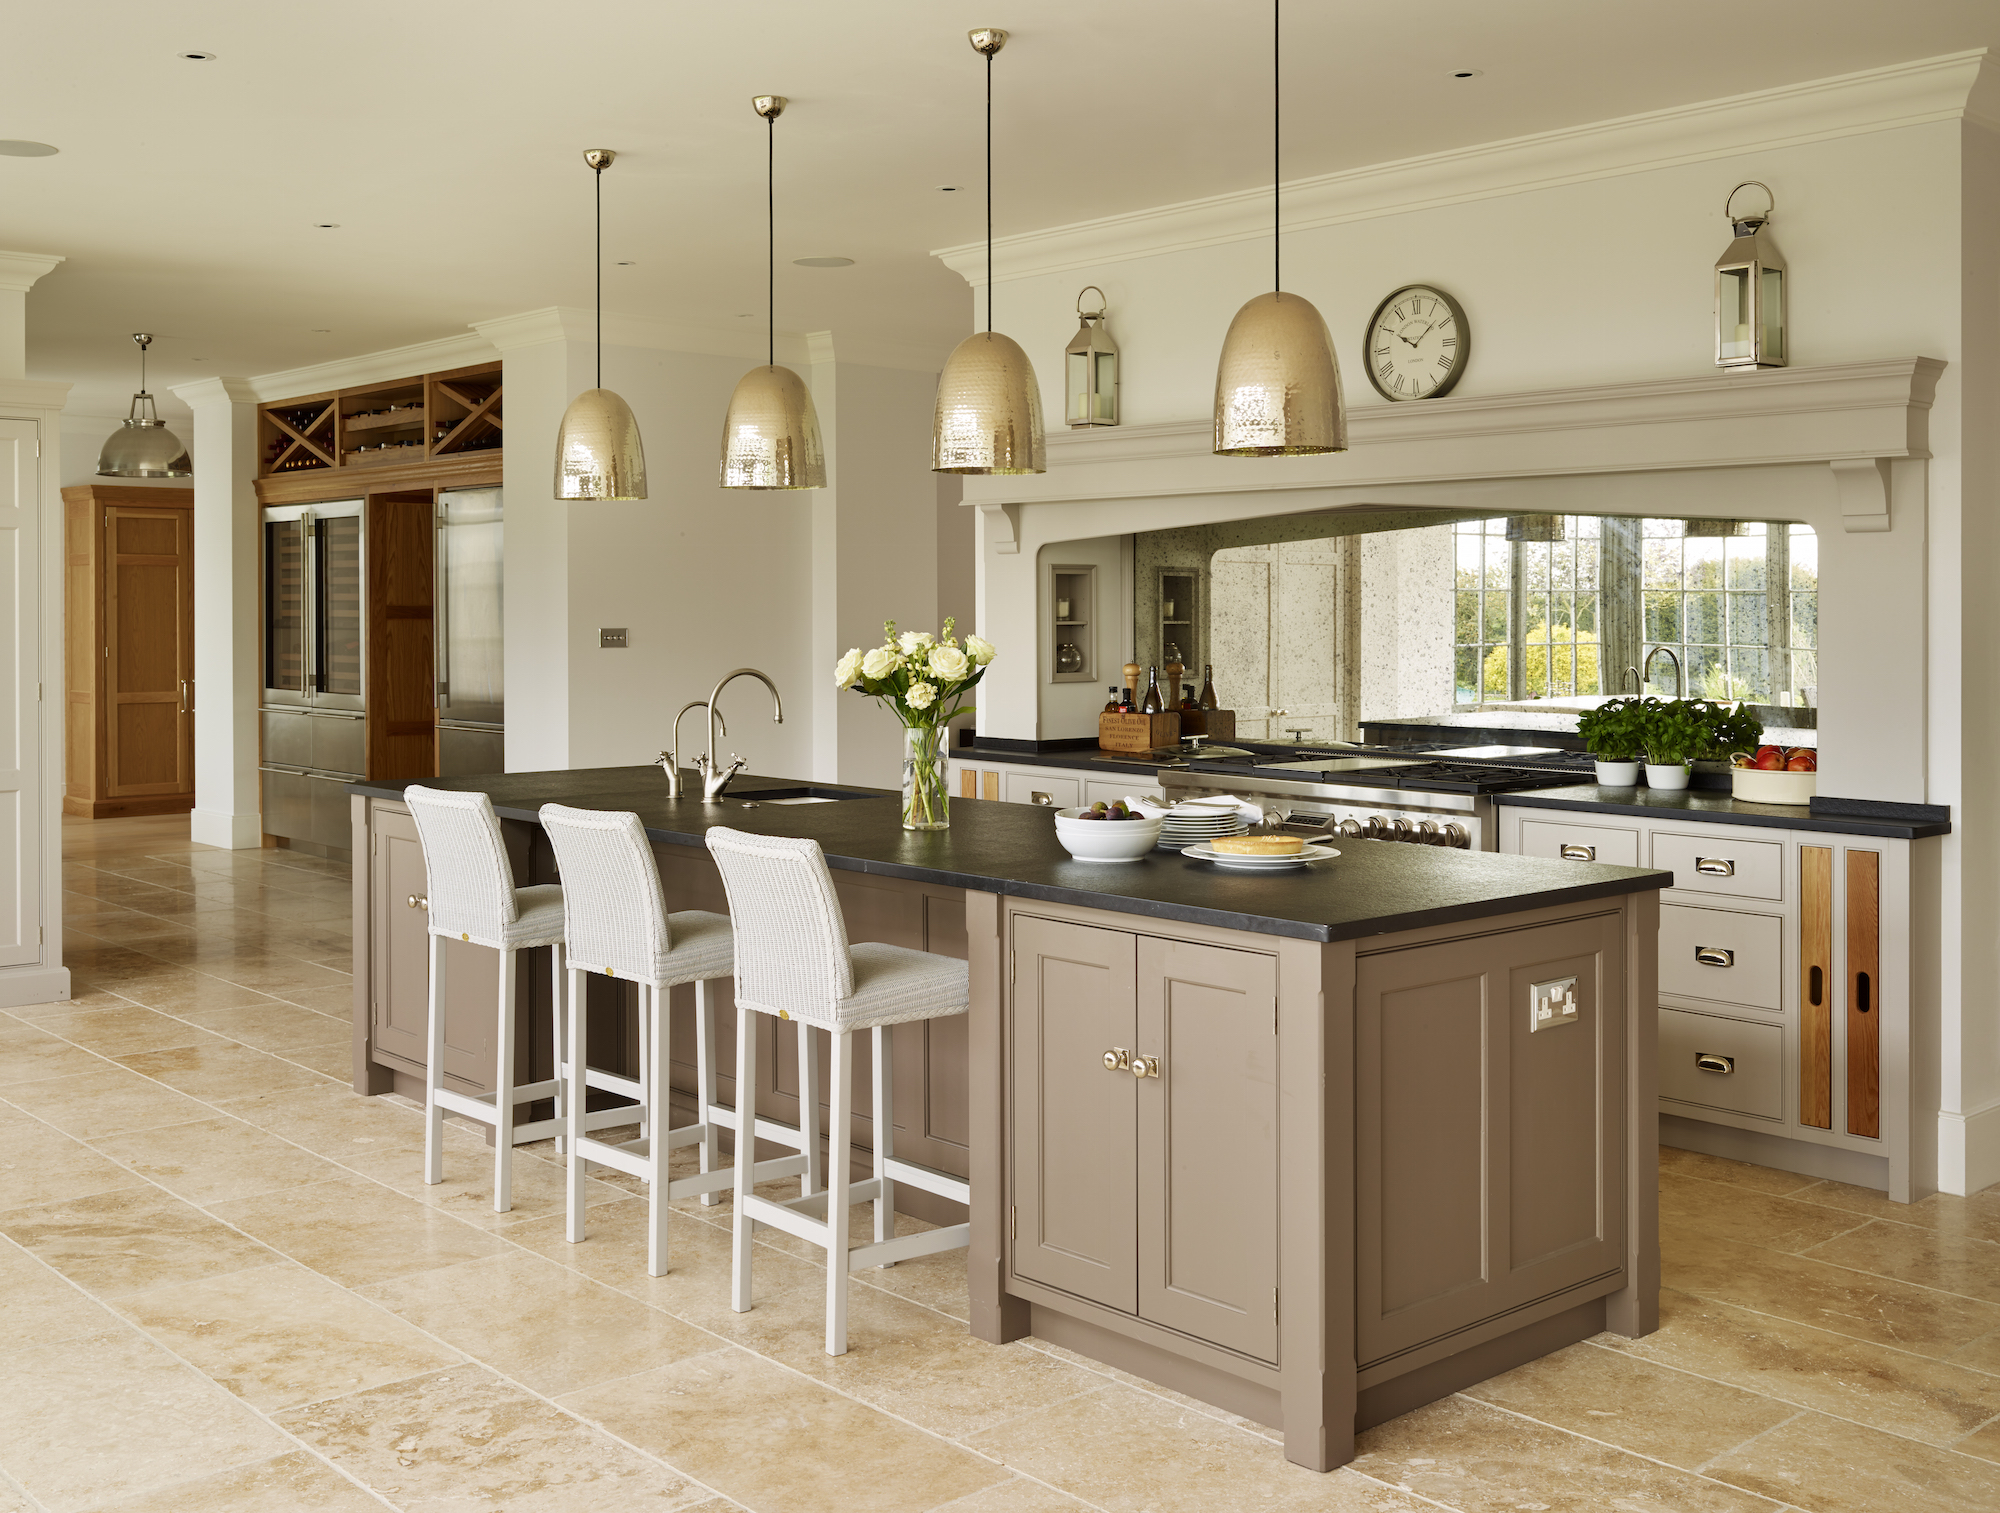 kitchen desing white chandelier 66 beautiful design ideas for the heart of your home